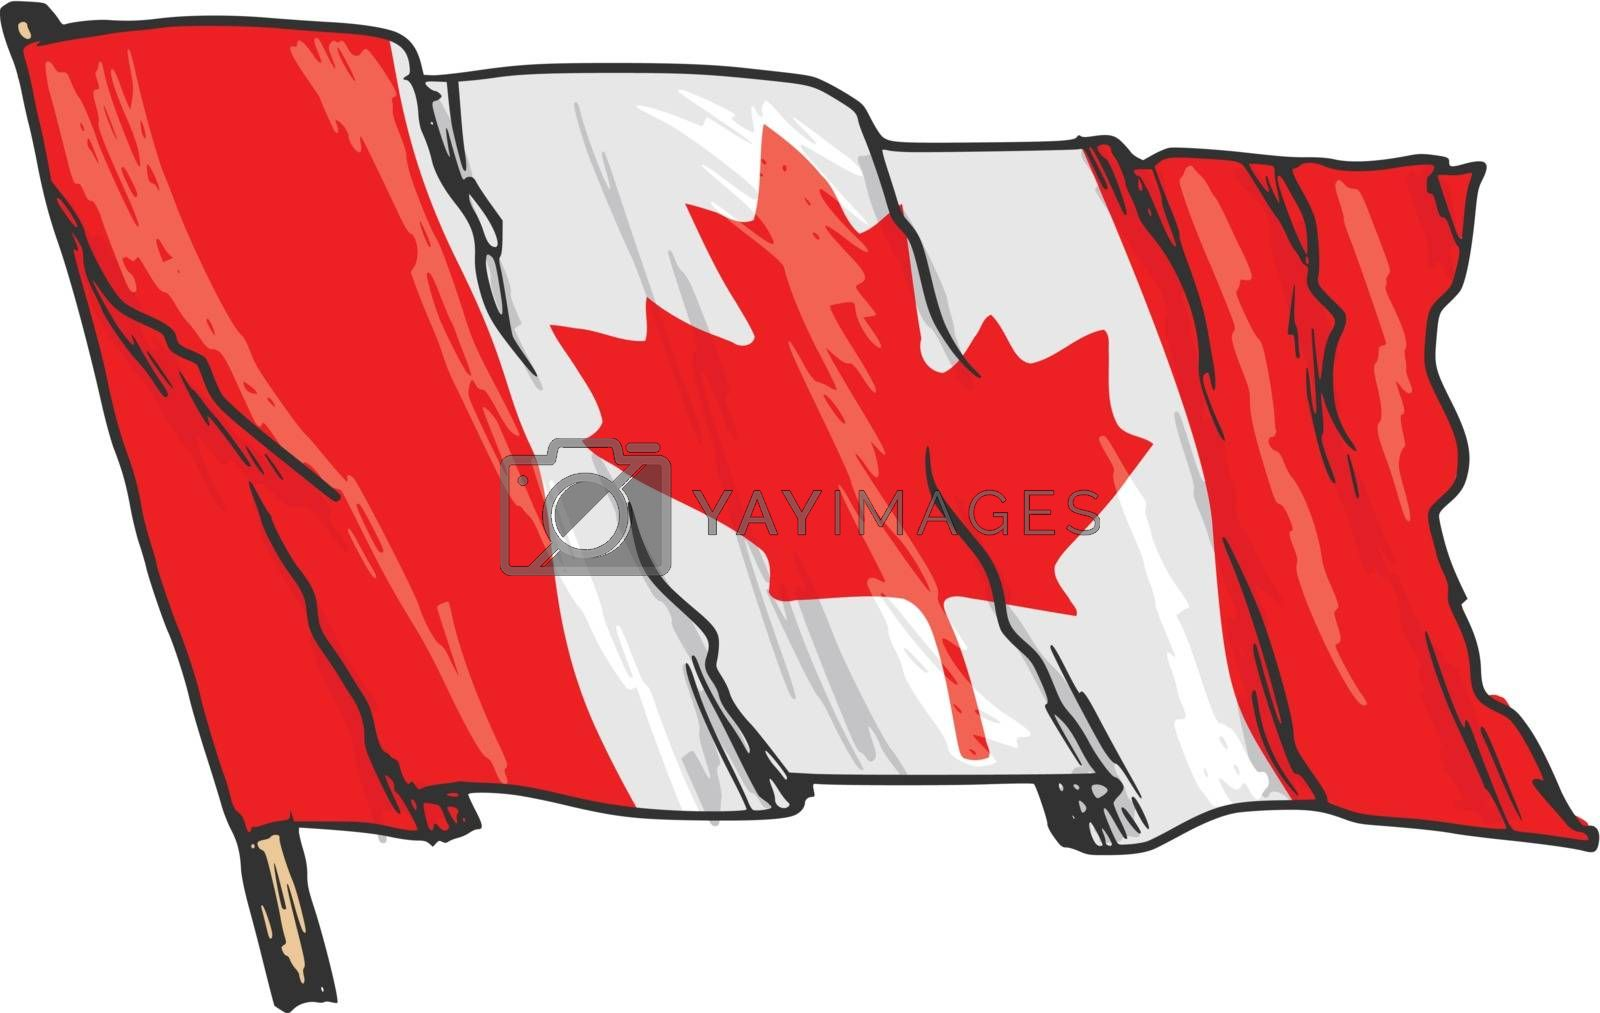 hand drawn, sketch, illustration of flag of Canada